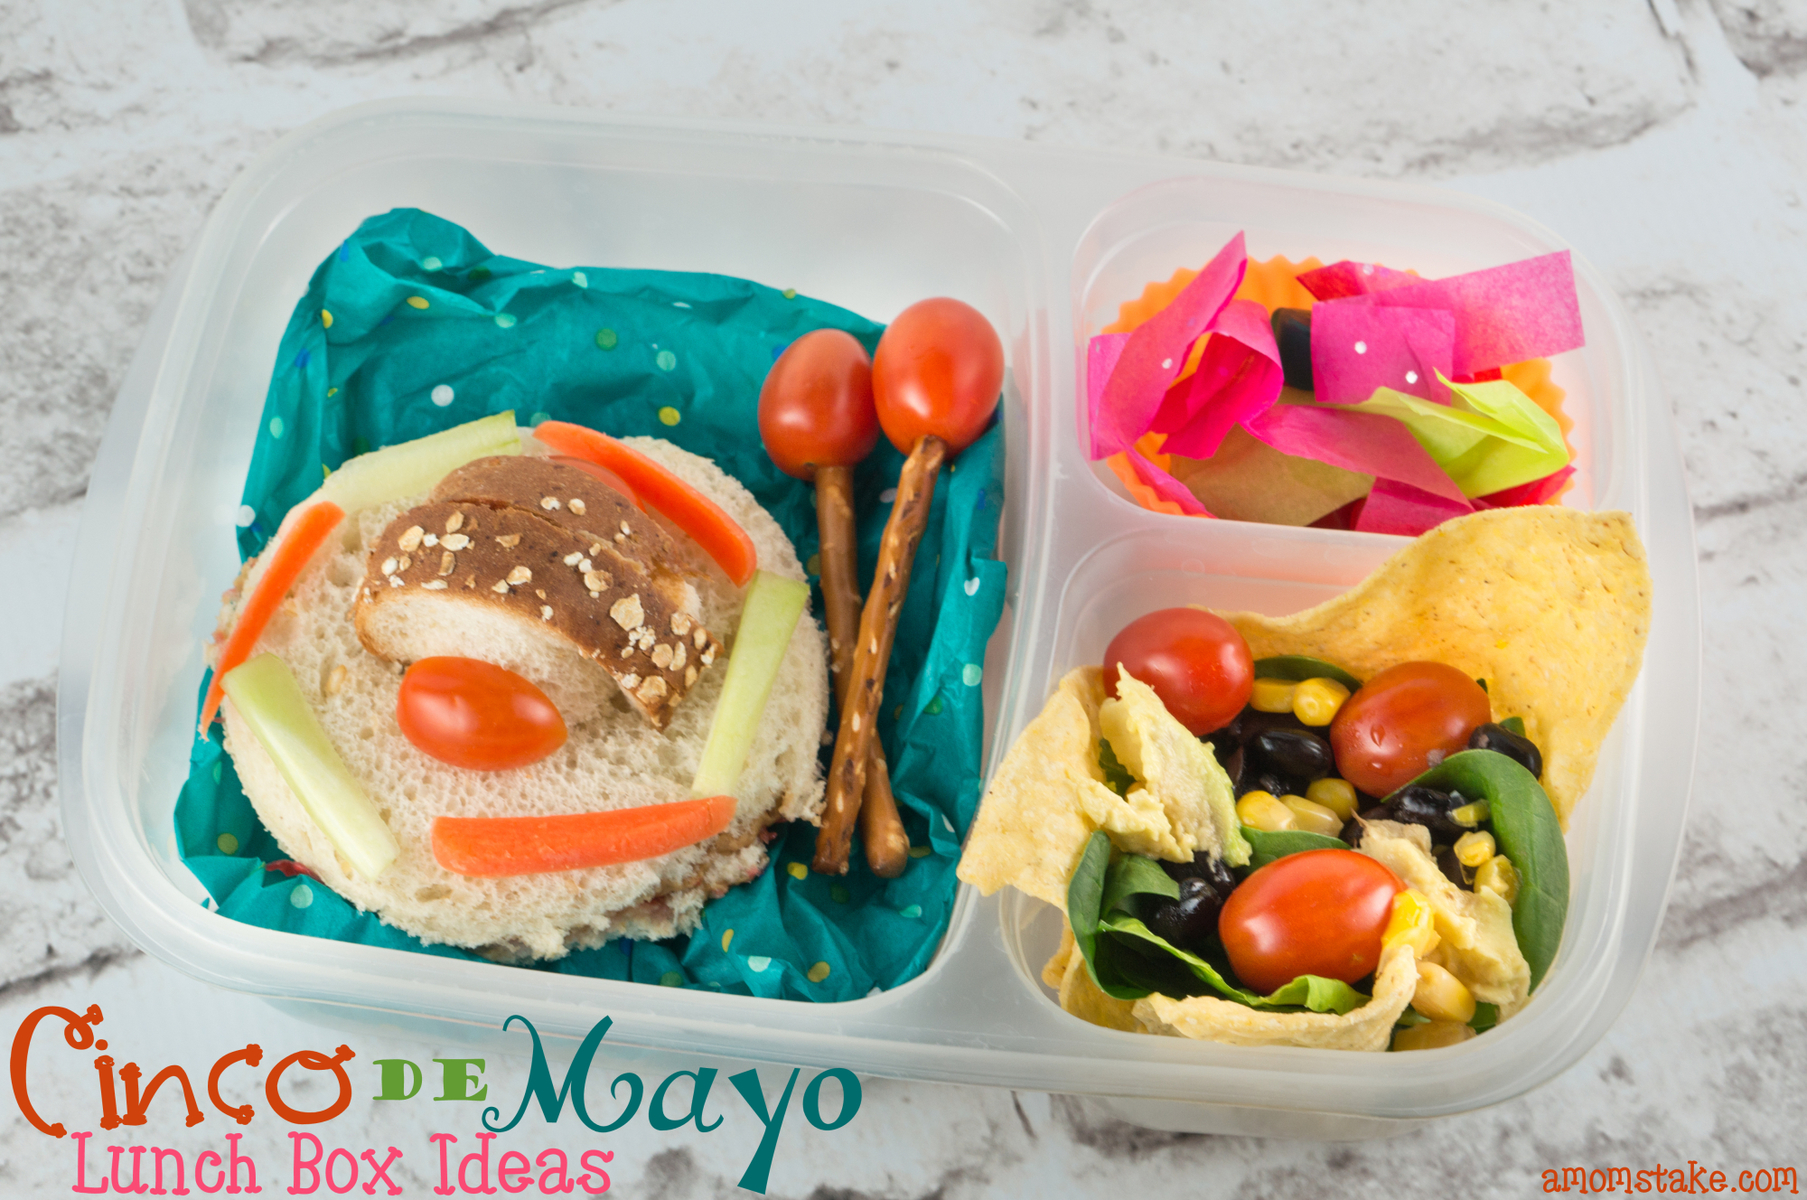 Cinco de Mayo Lunch Box Ideas